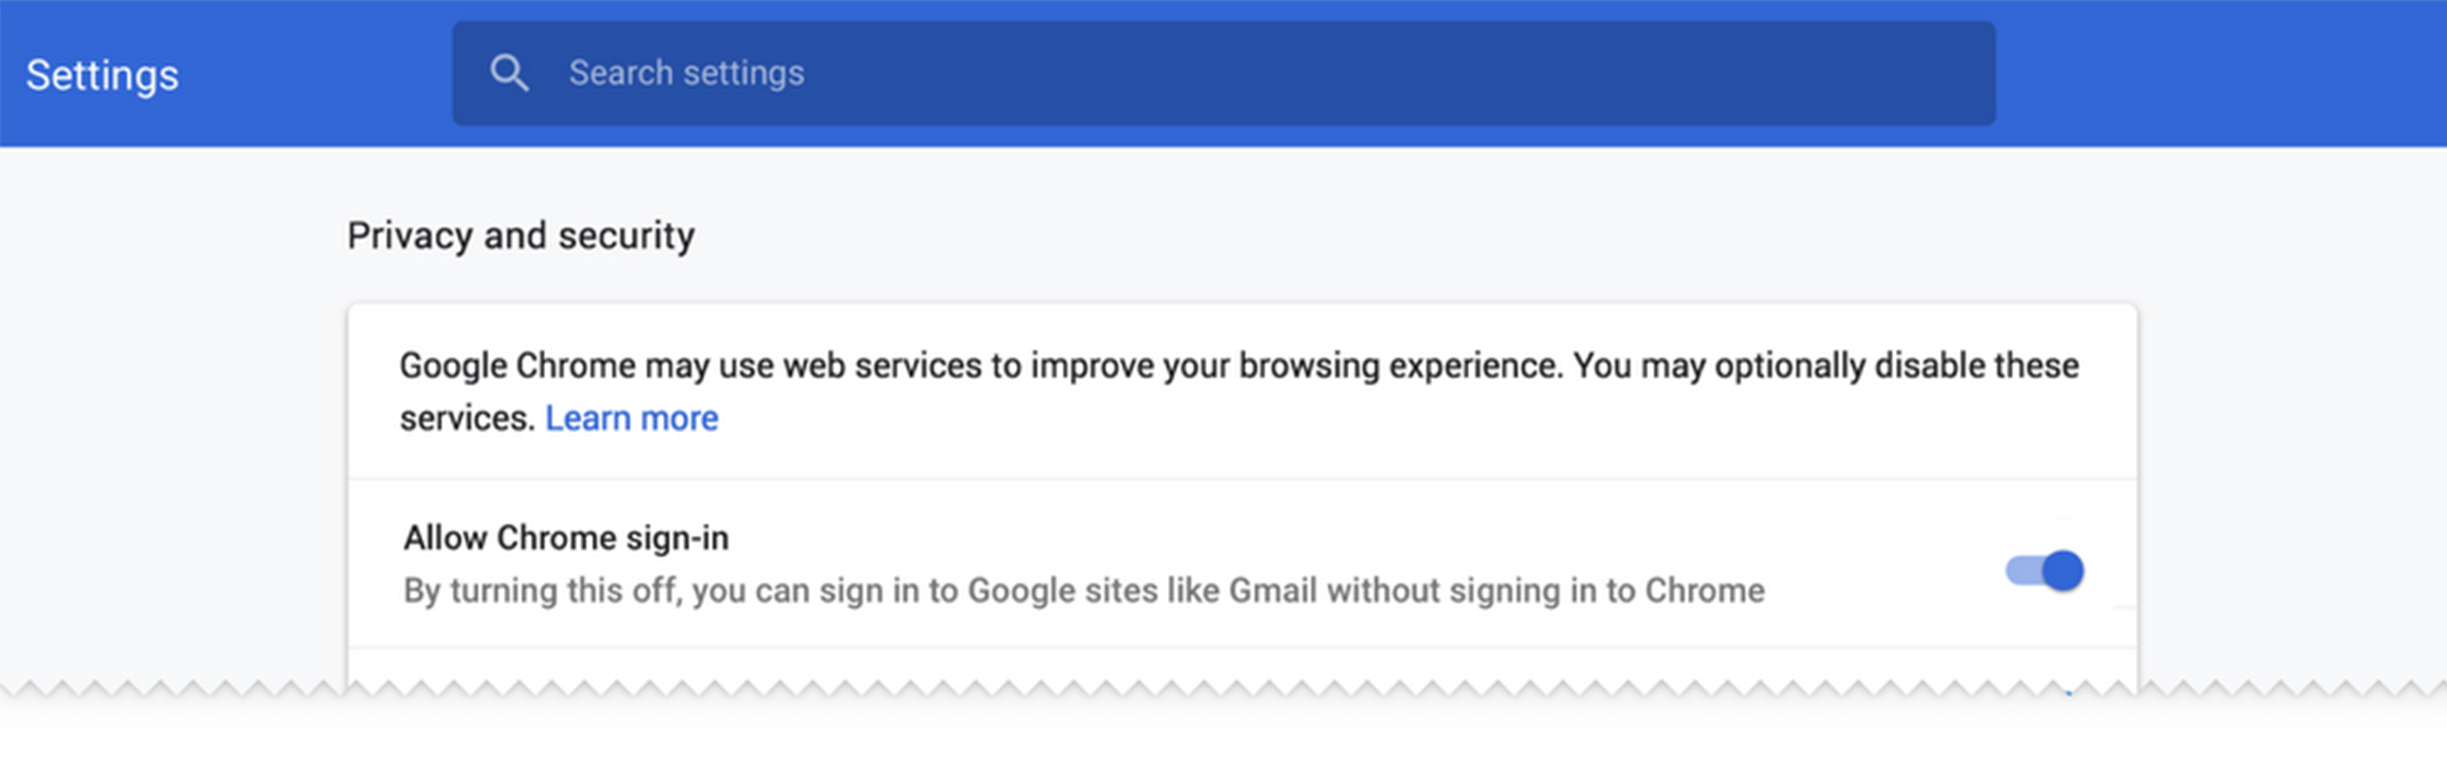 Sign-in settings in Chrome